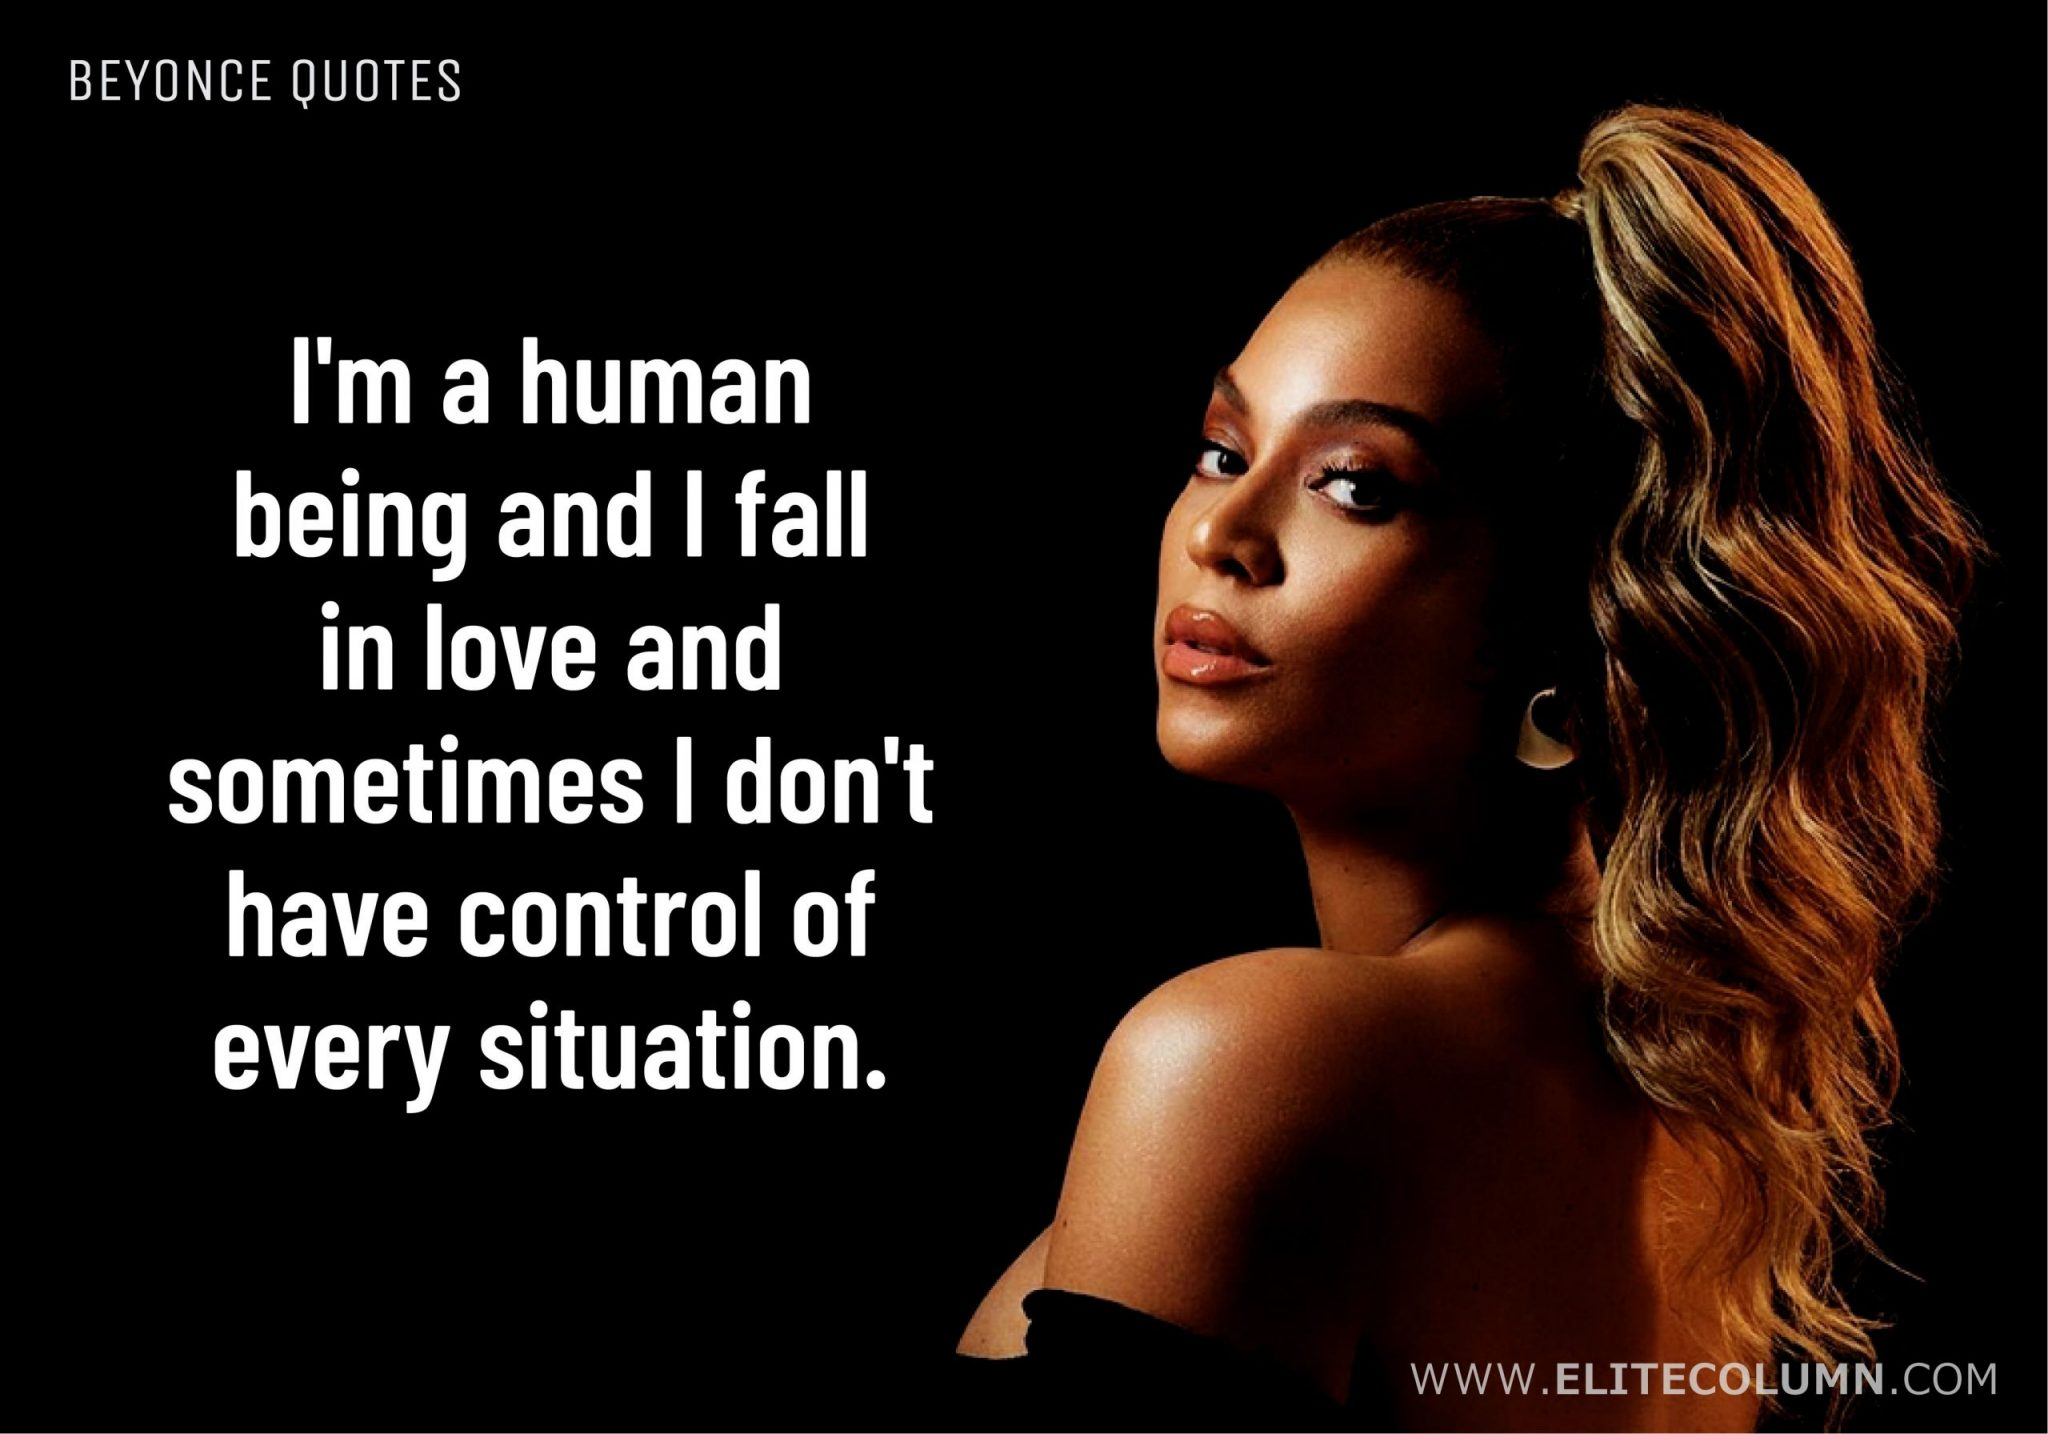 Beyonce Quotes (1)